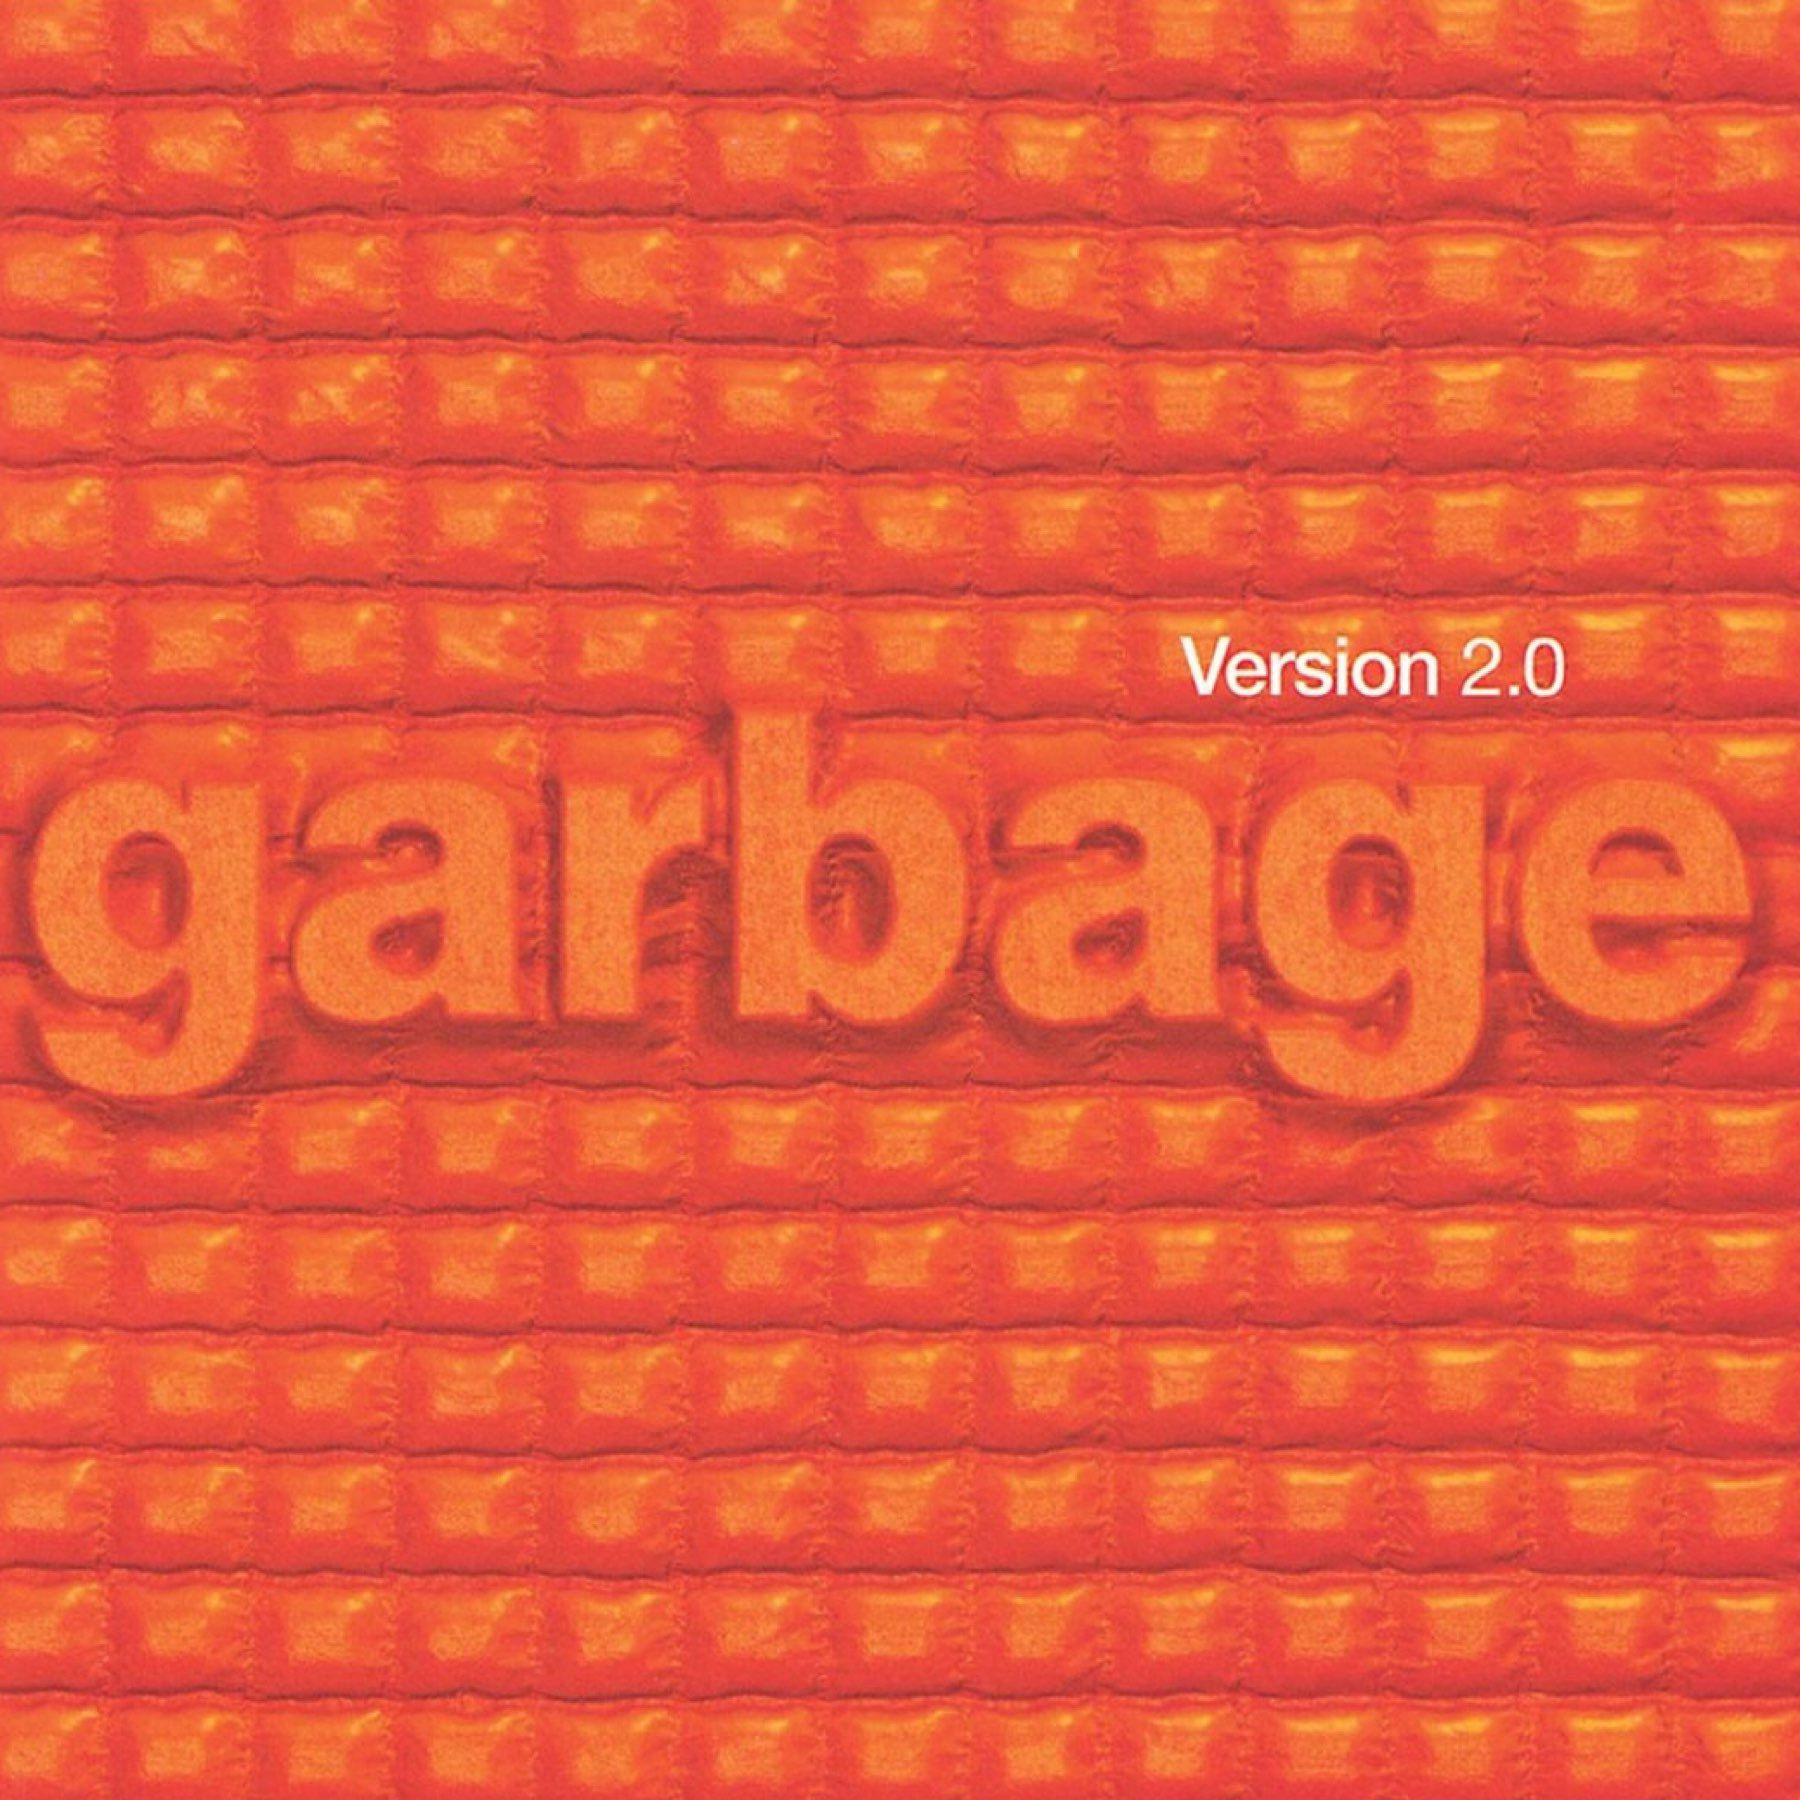 Album Cover of Version 2.0 by Garbage.